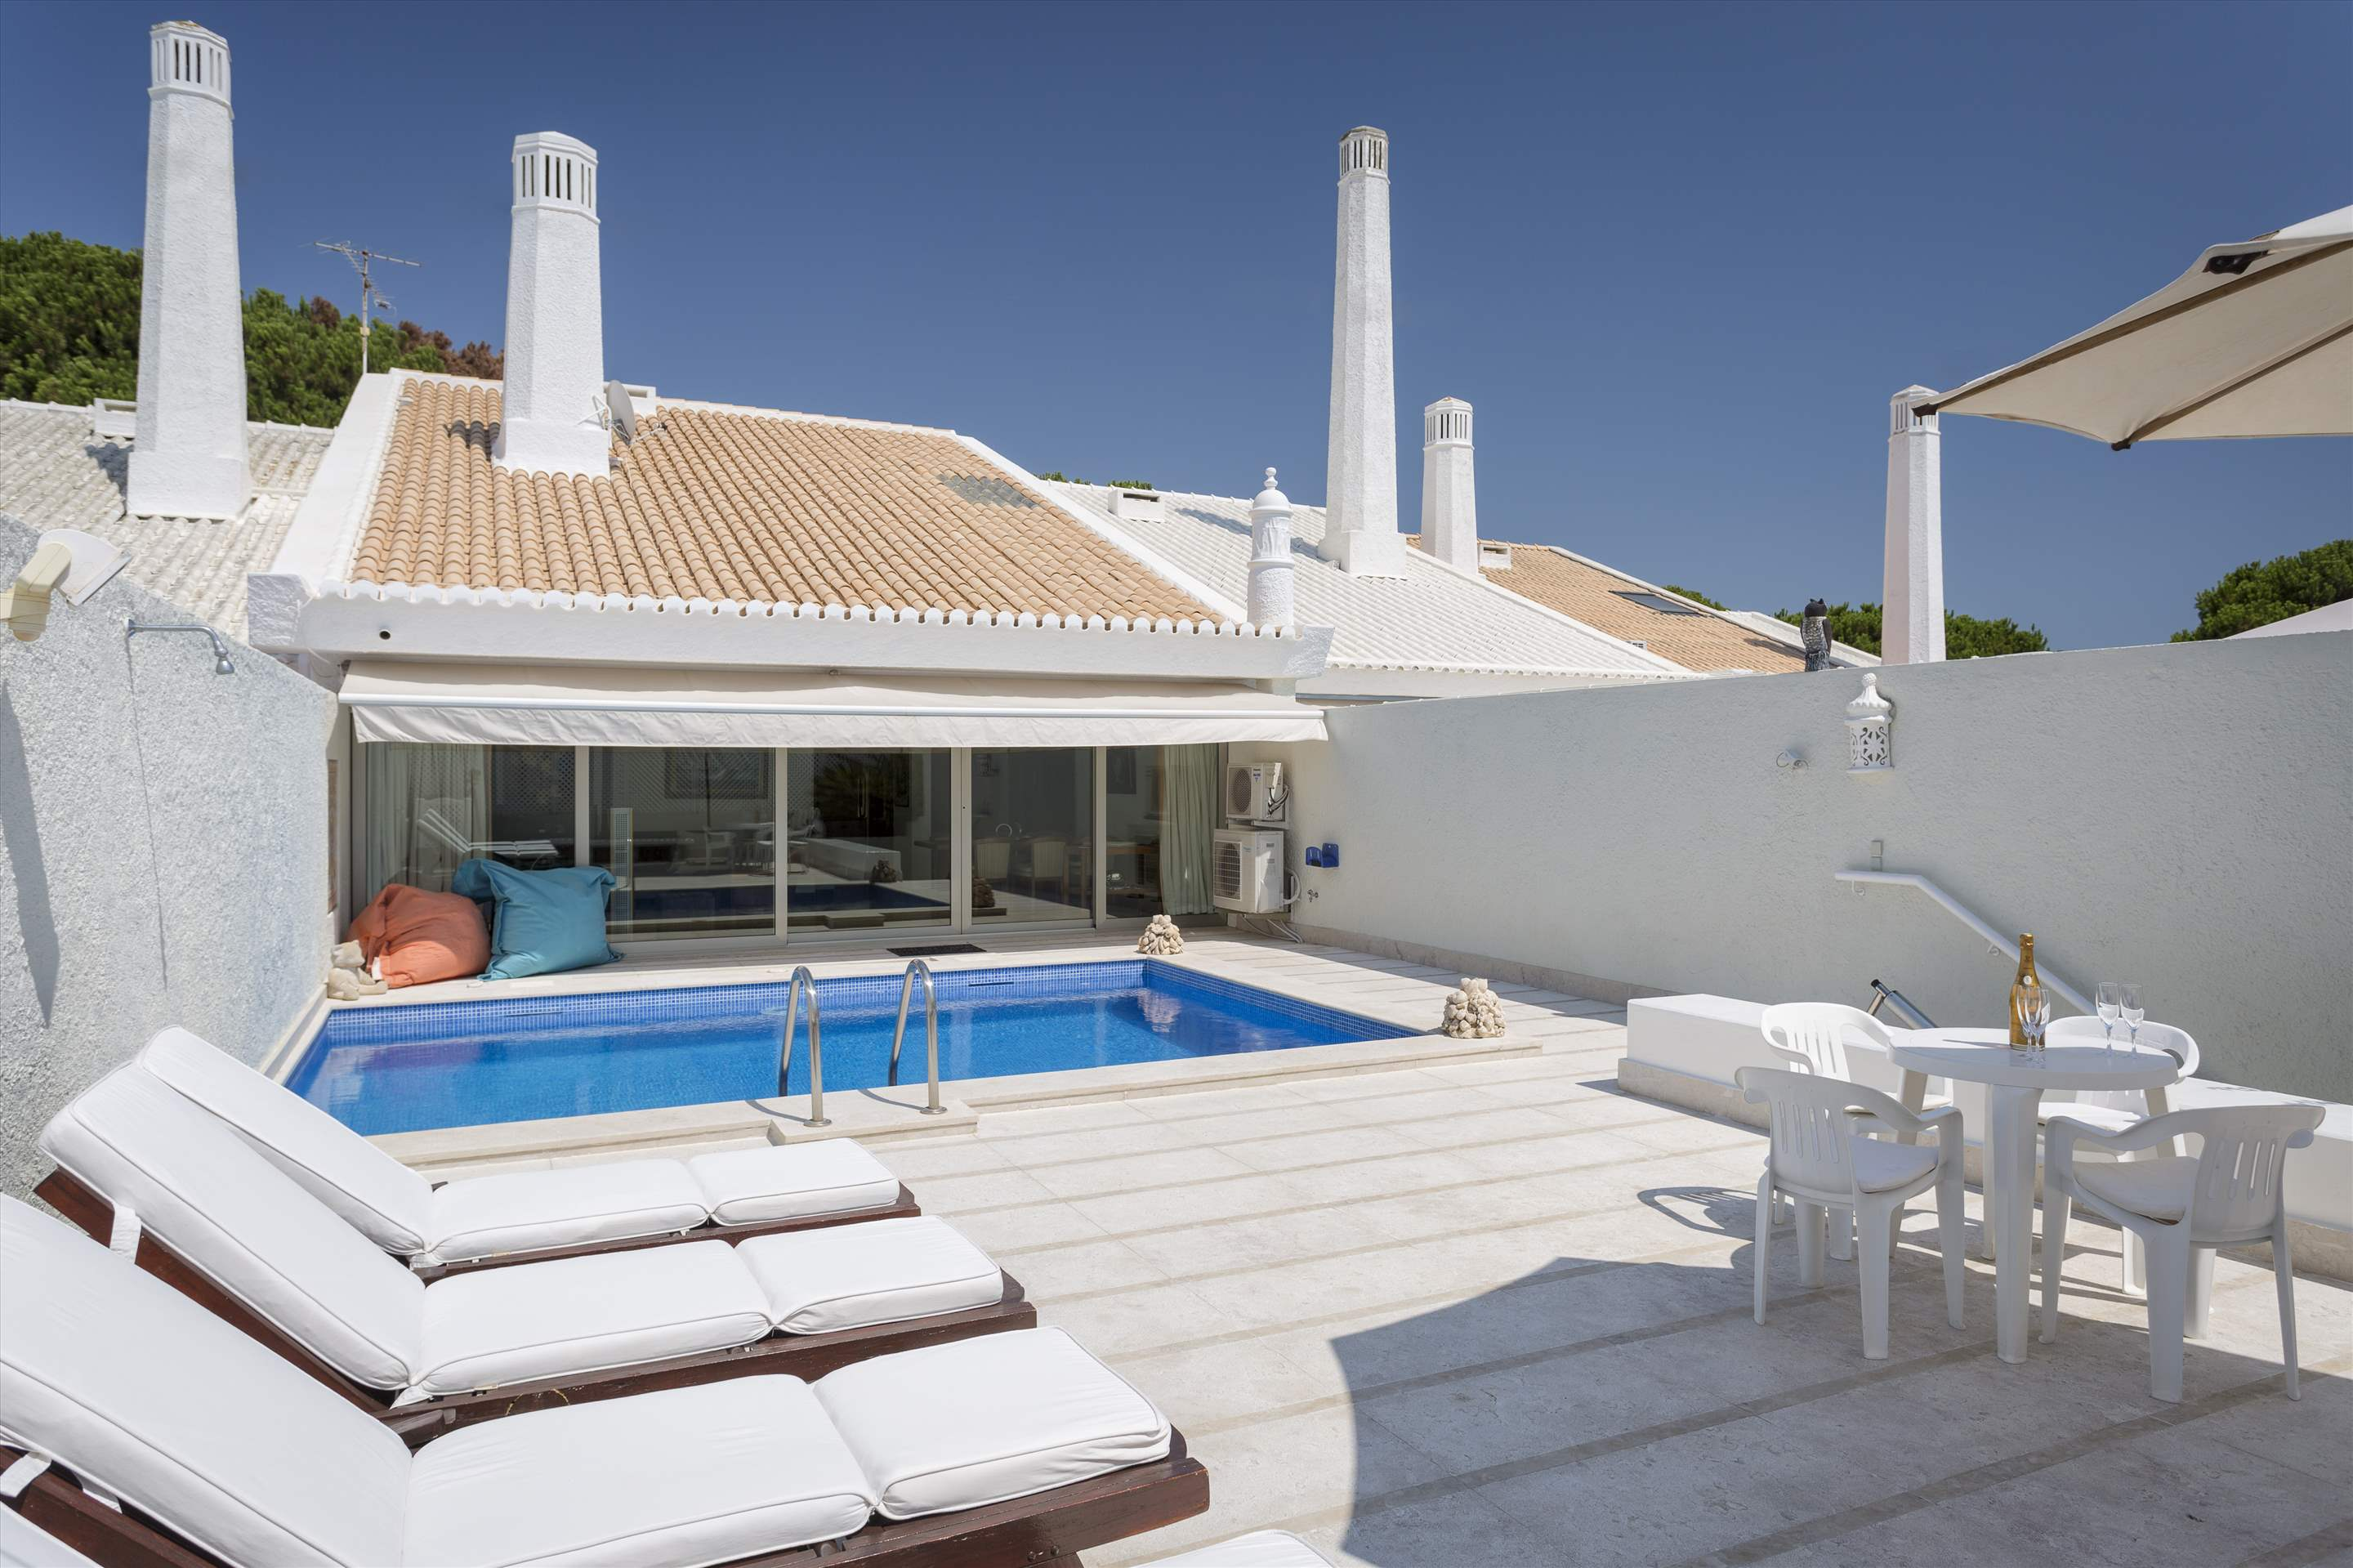 Villa Valerie one, 3 bedroom villa in Vilamoura Area, Algarve